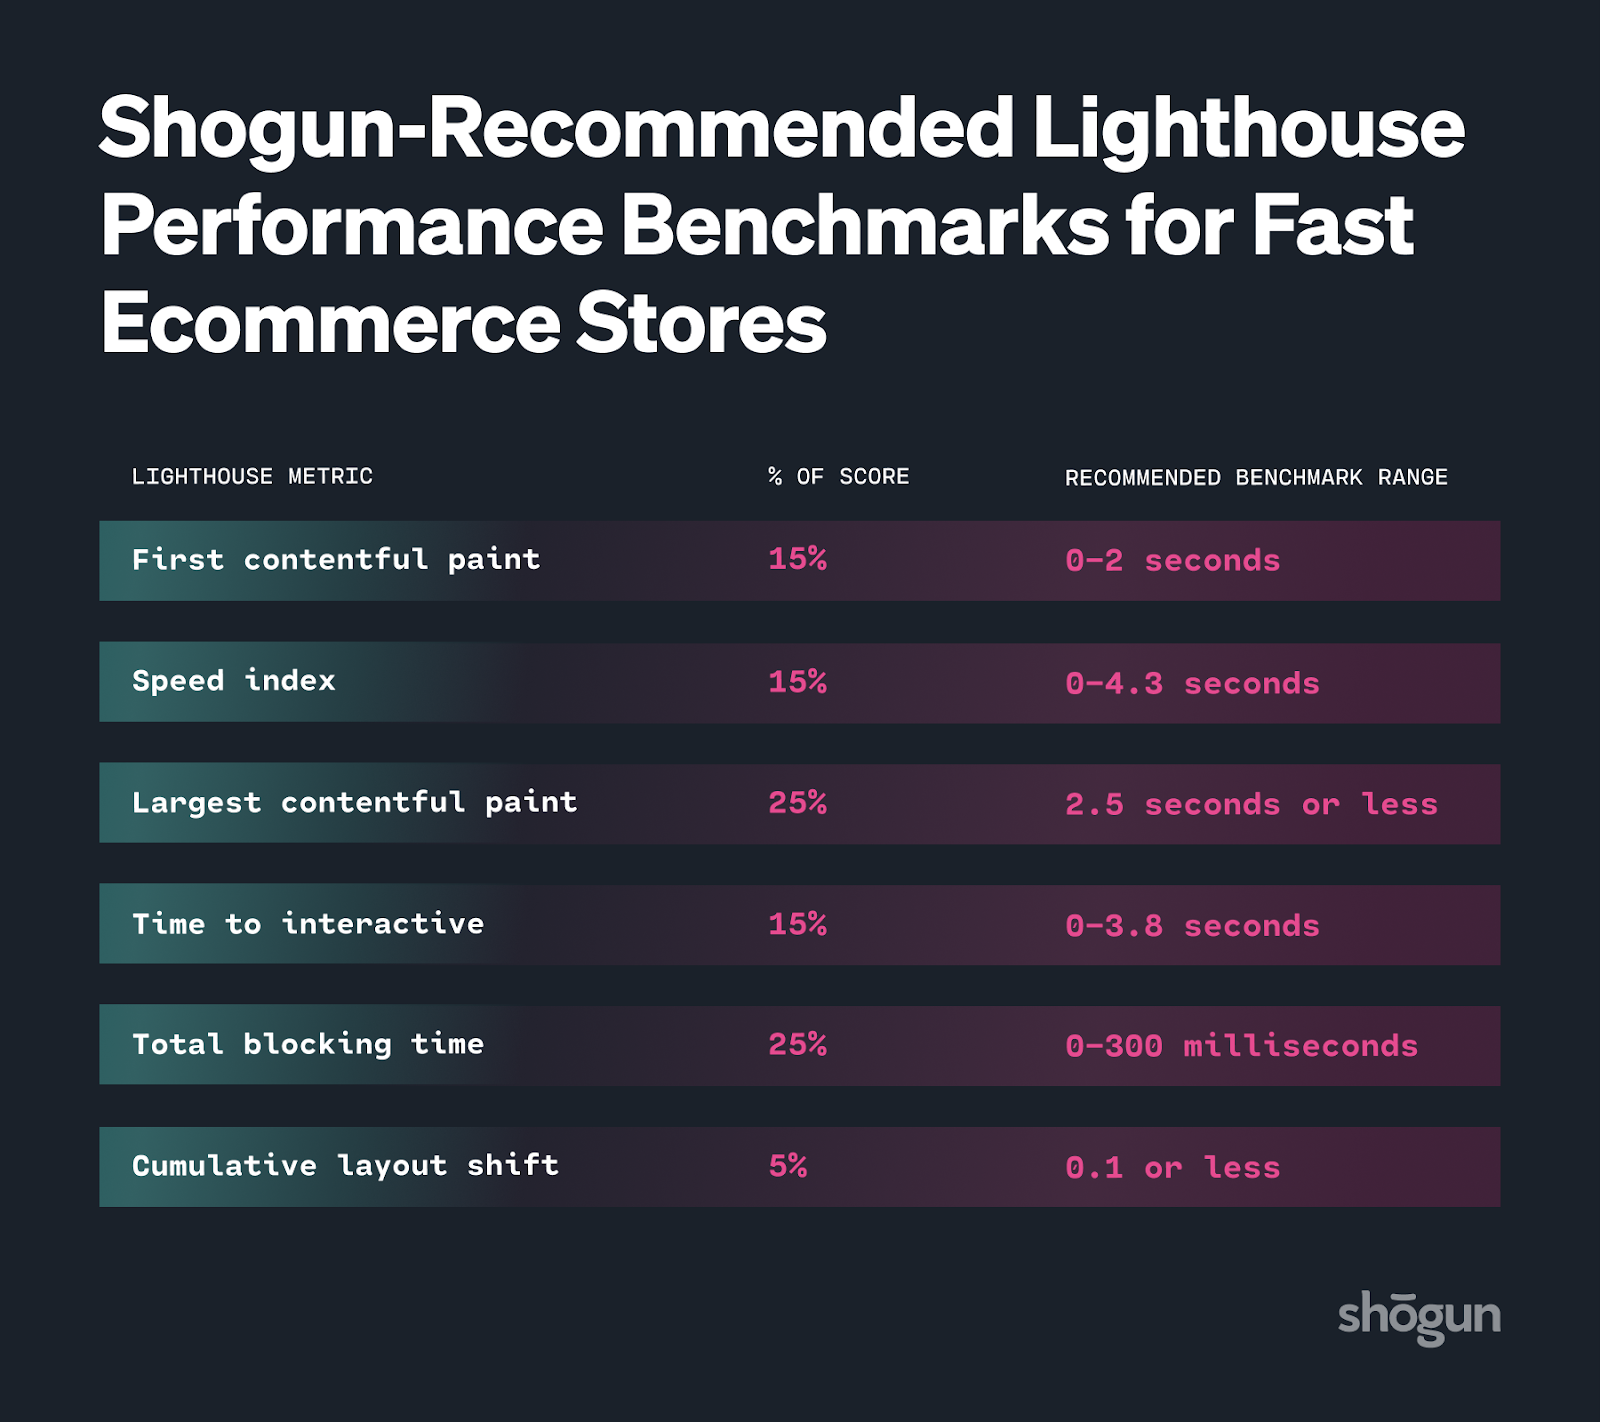 Shogun-recommended Lighthouse performance benchmarks for fast ecommerce stores